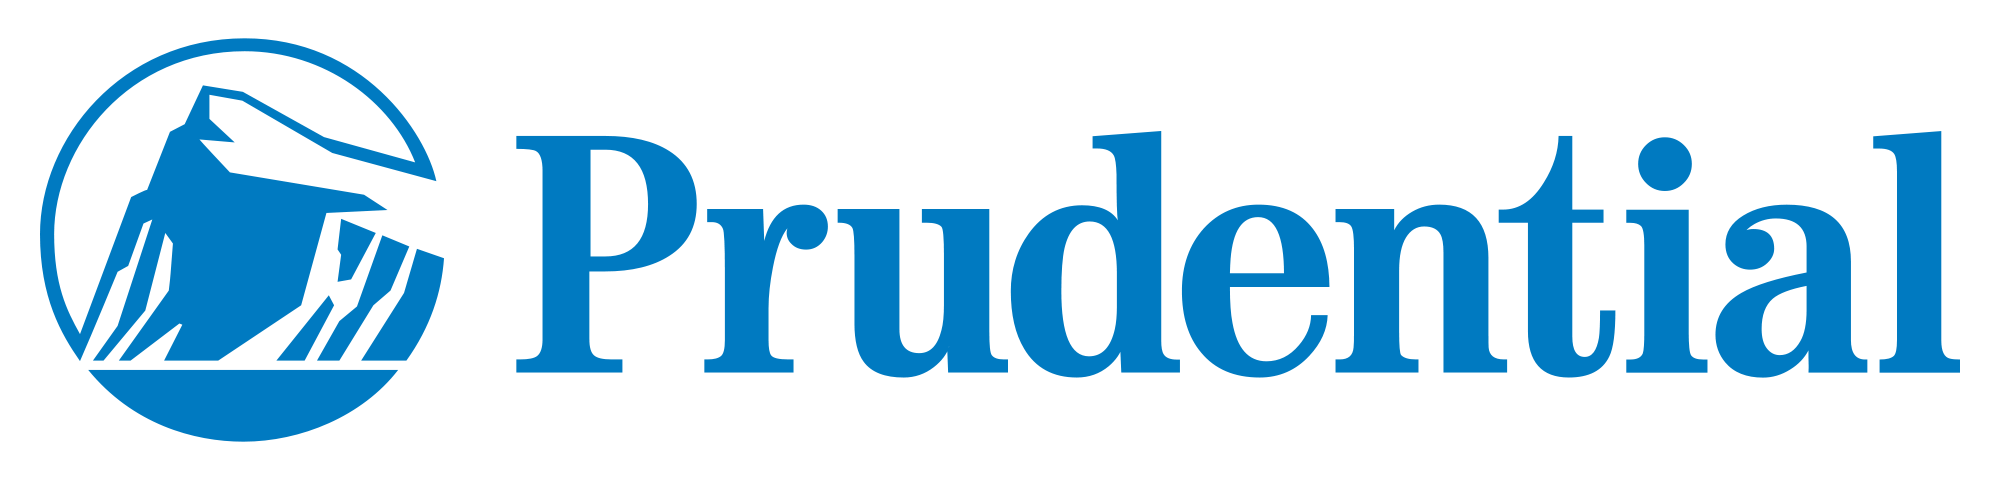 Prudential-logo.png